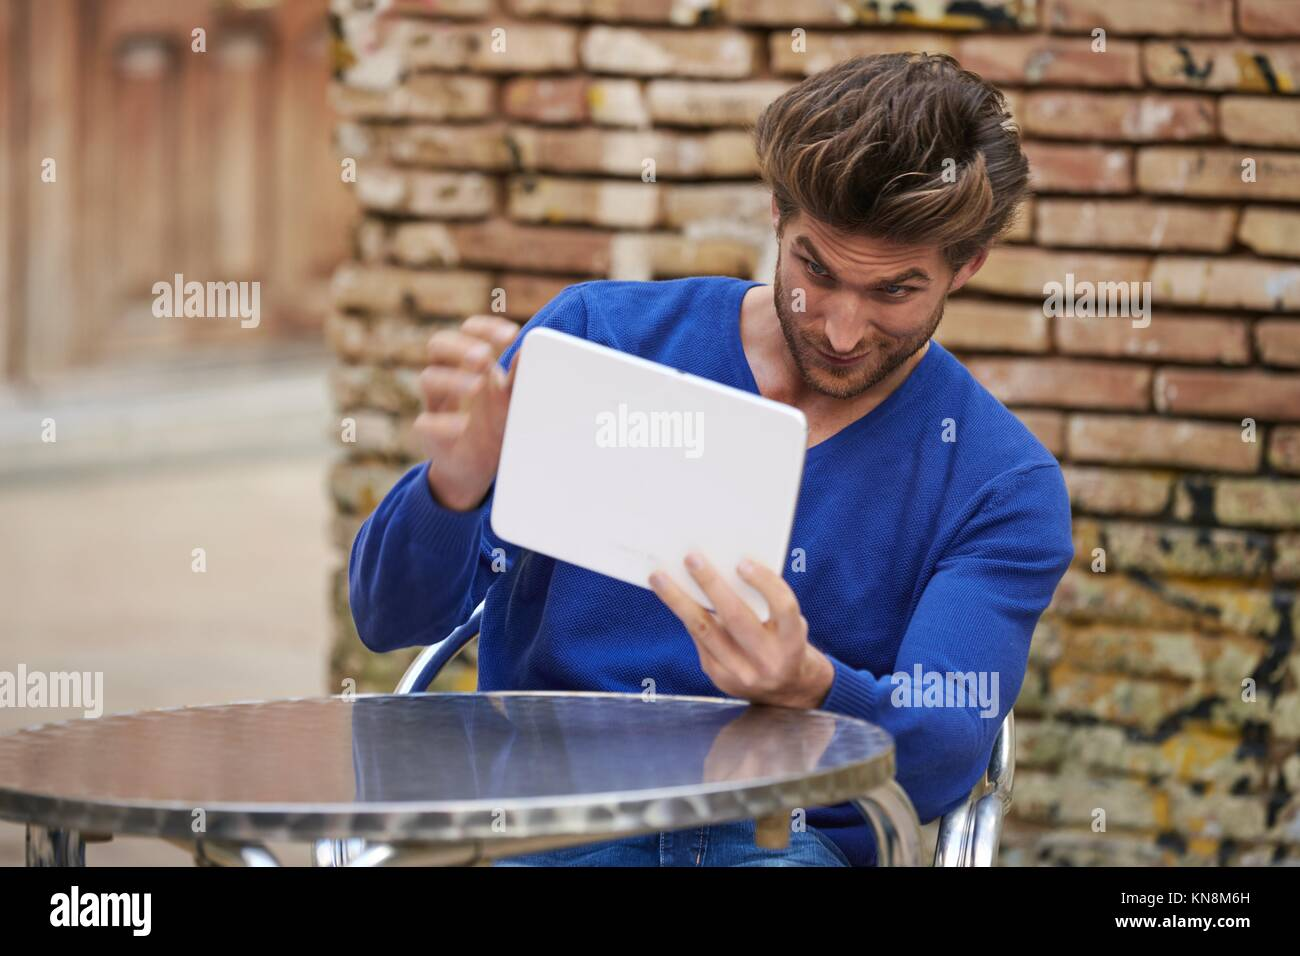 Young man using tablet pc as a mirror to fix his hair in outdoor cafe. - Stock Image